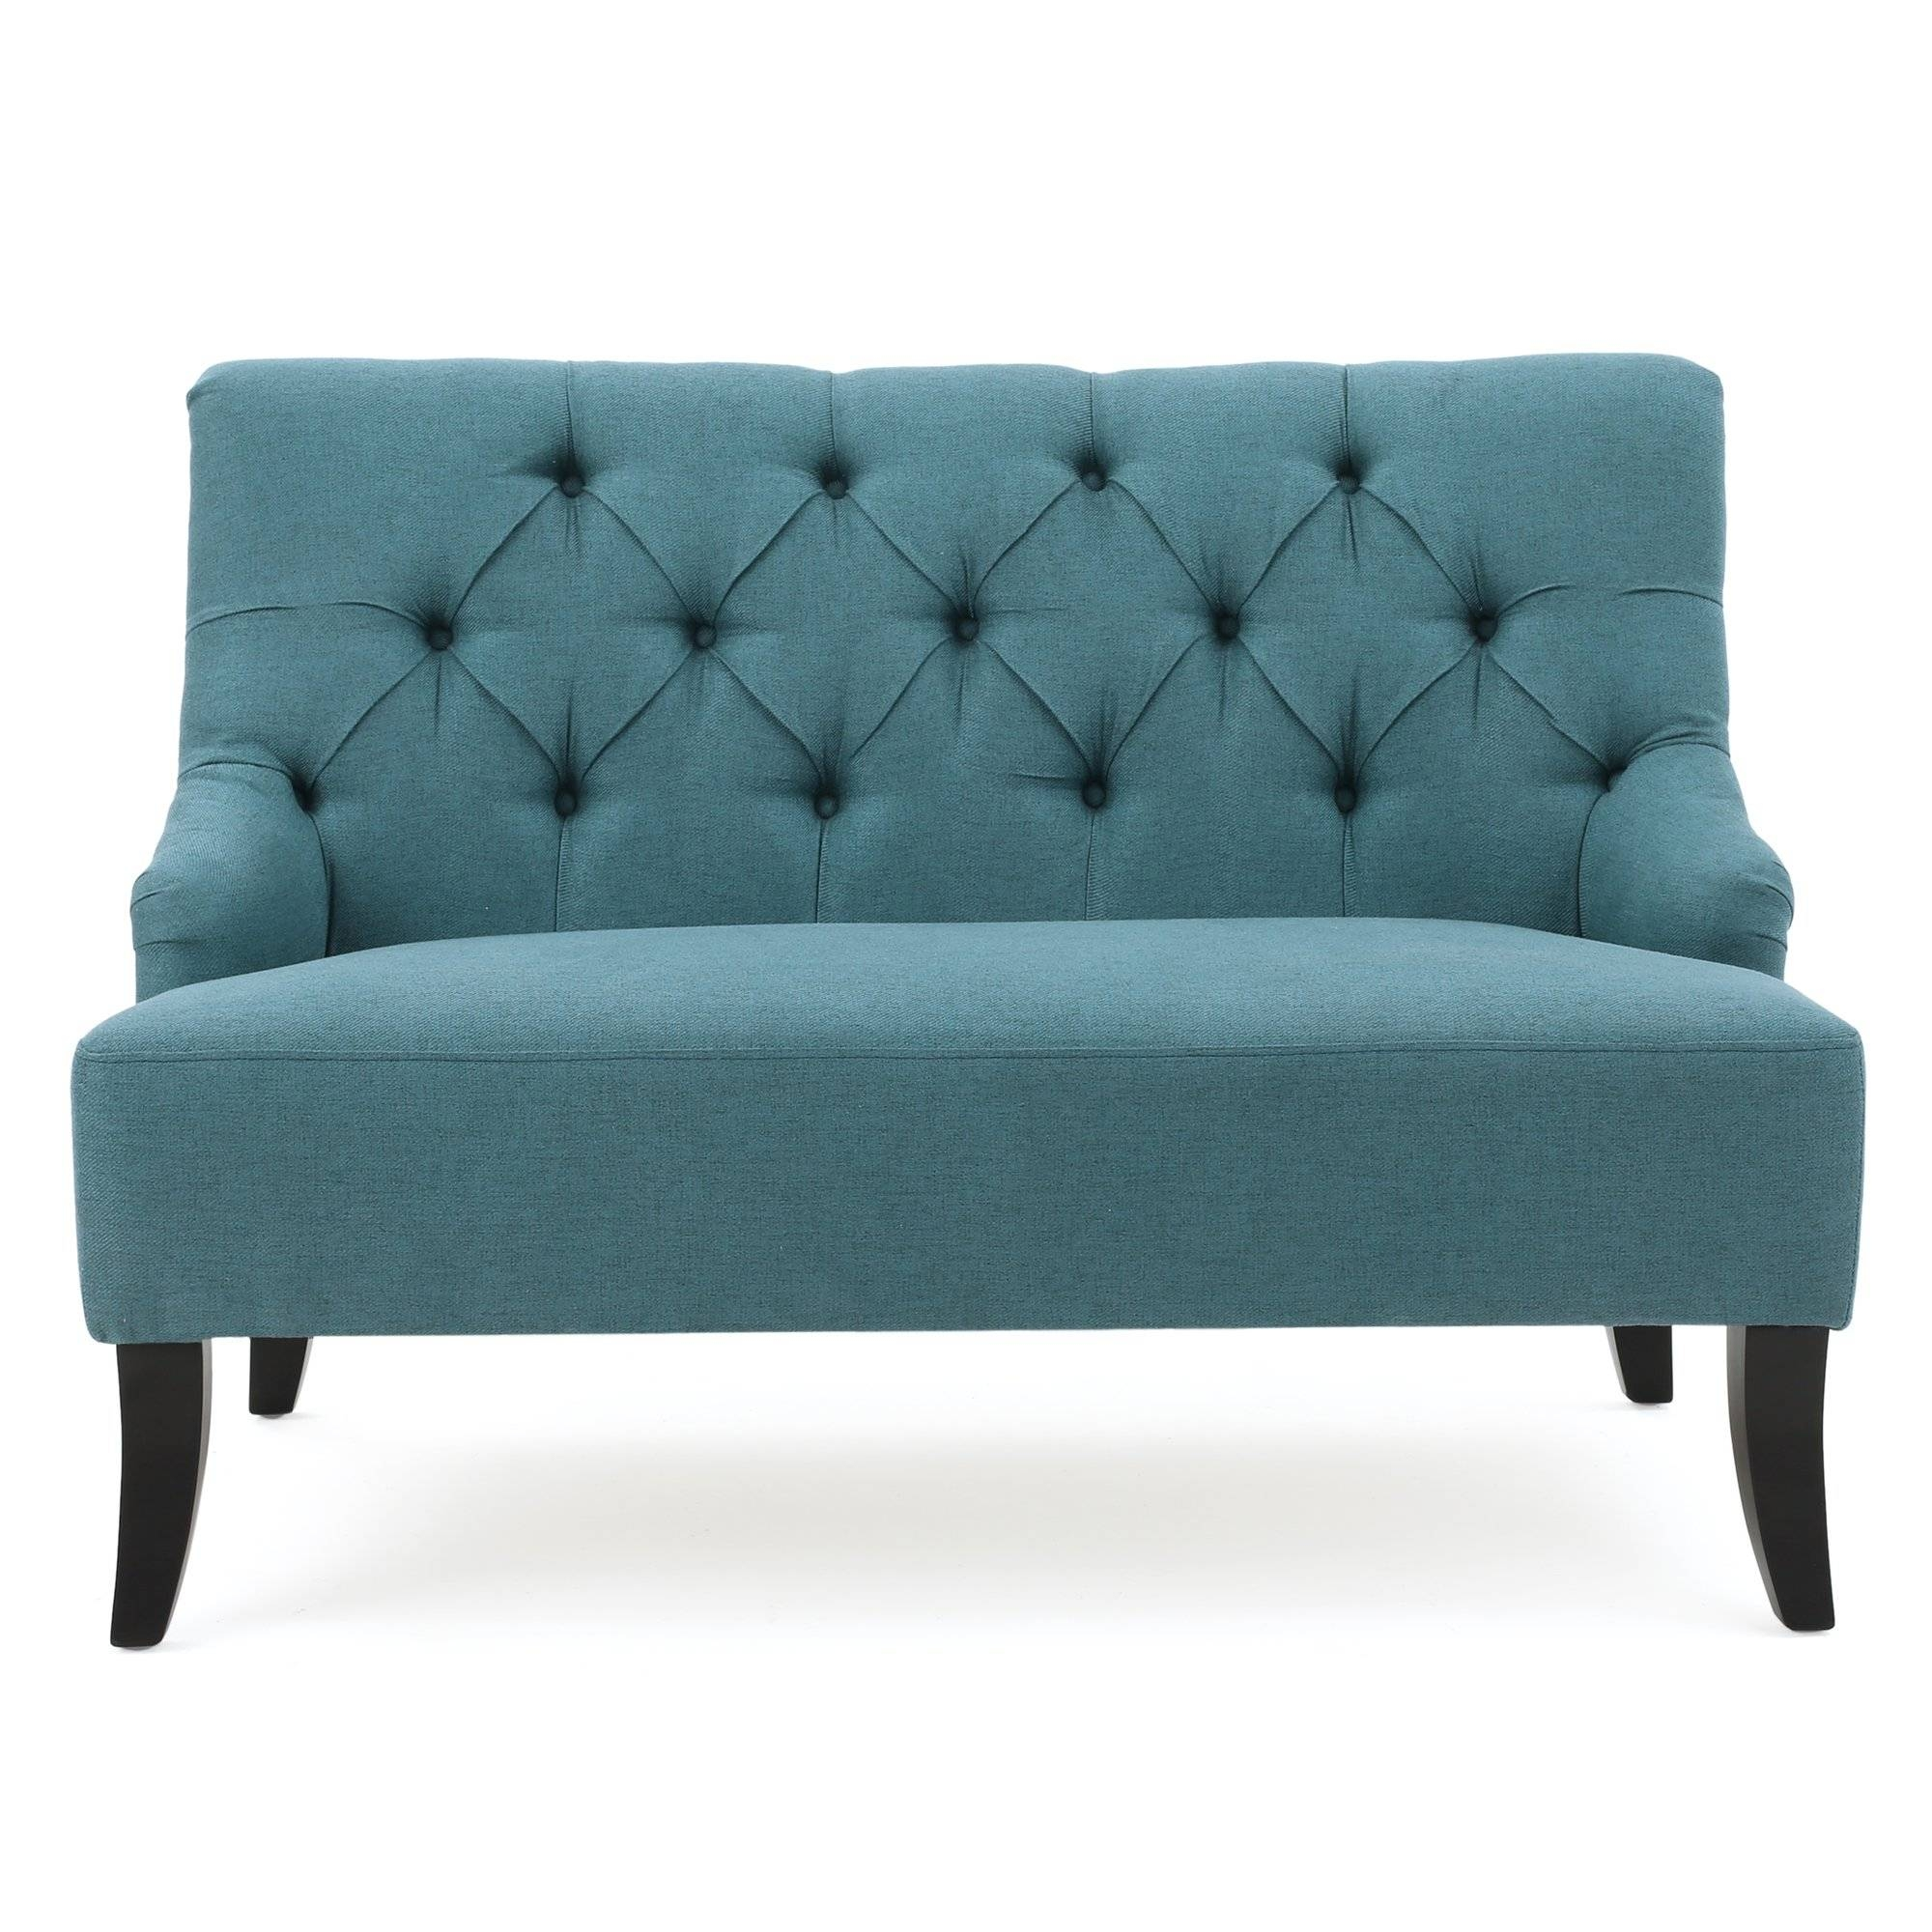 Blue Denim Sofa Couch - Best Sofa Decoration And Craft 2017 with regard to Blue Denim Sofas (Image 2 of 15)